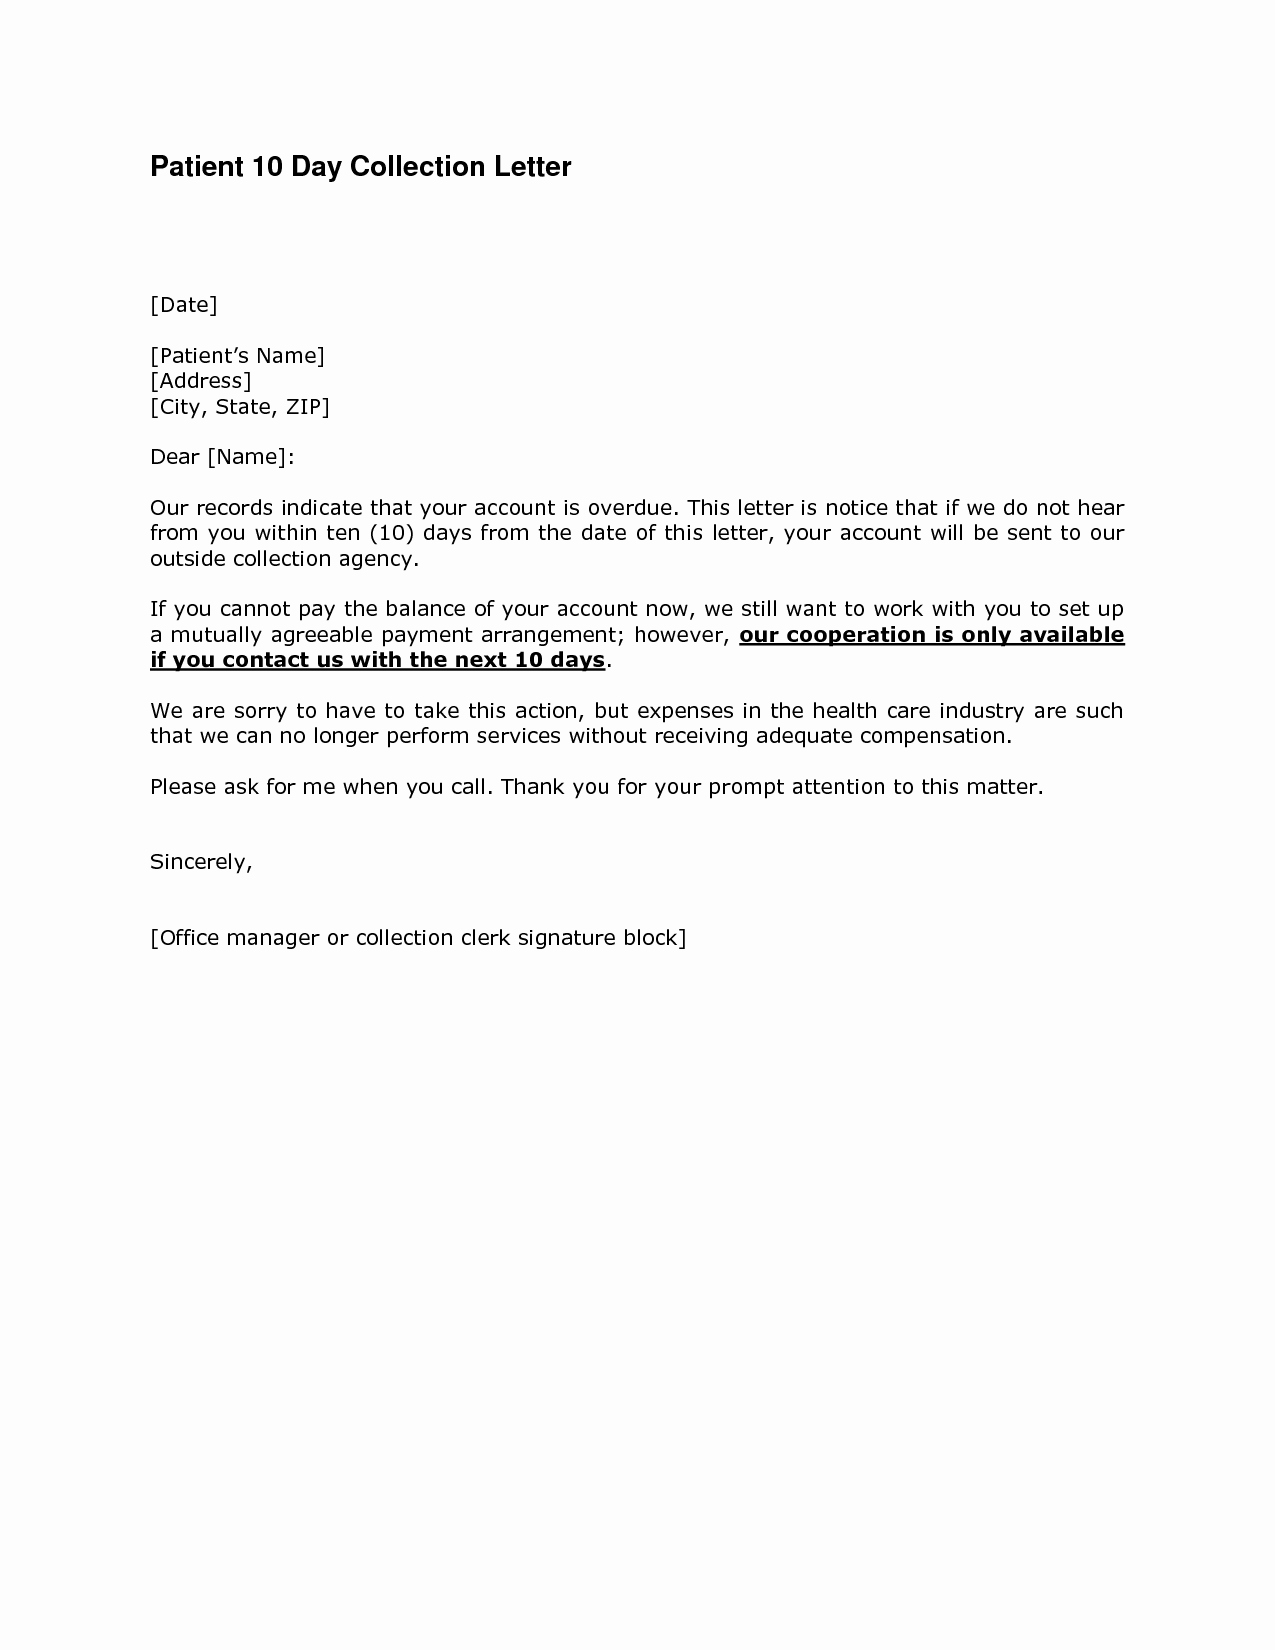 Medical Collection Letter Templates Beautiful Best S Of Collection Letter Sample Overdue Accounts